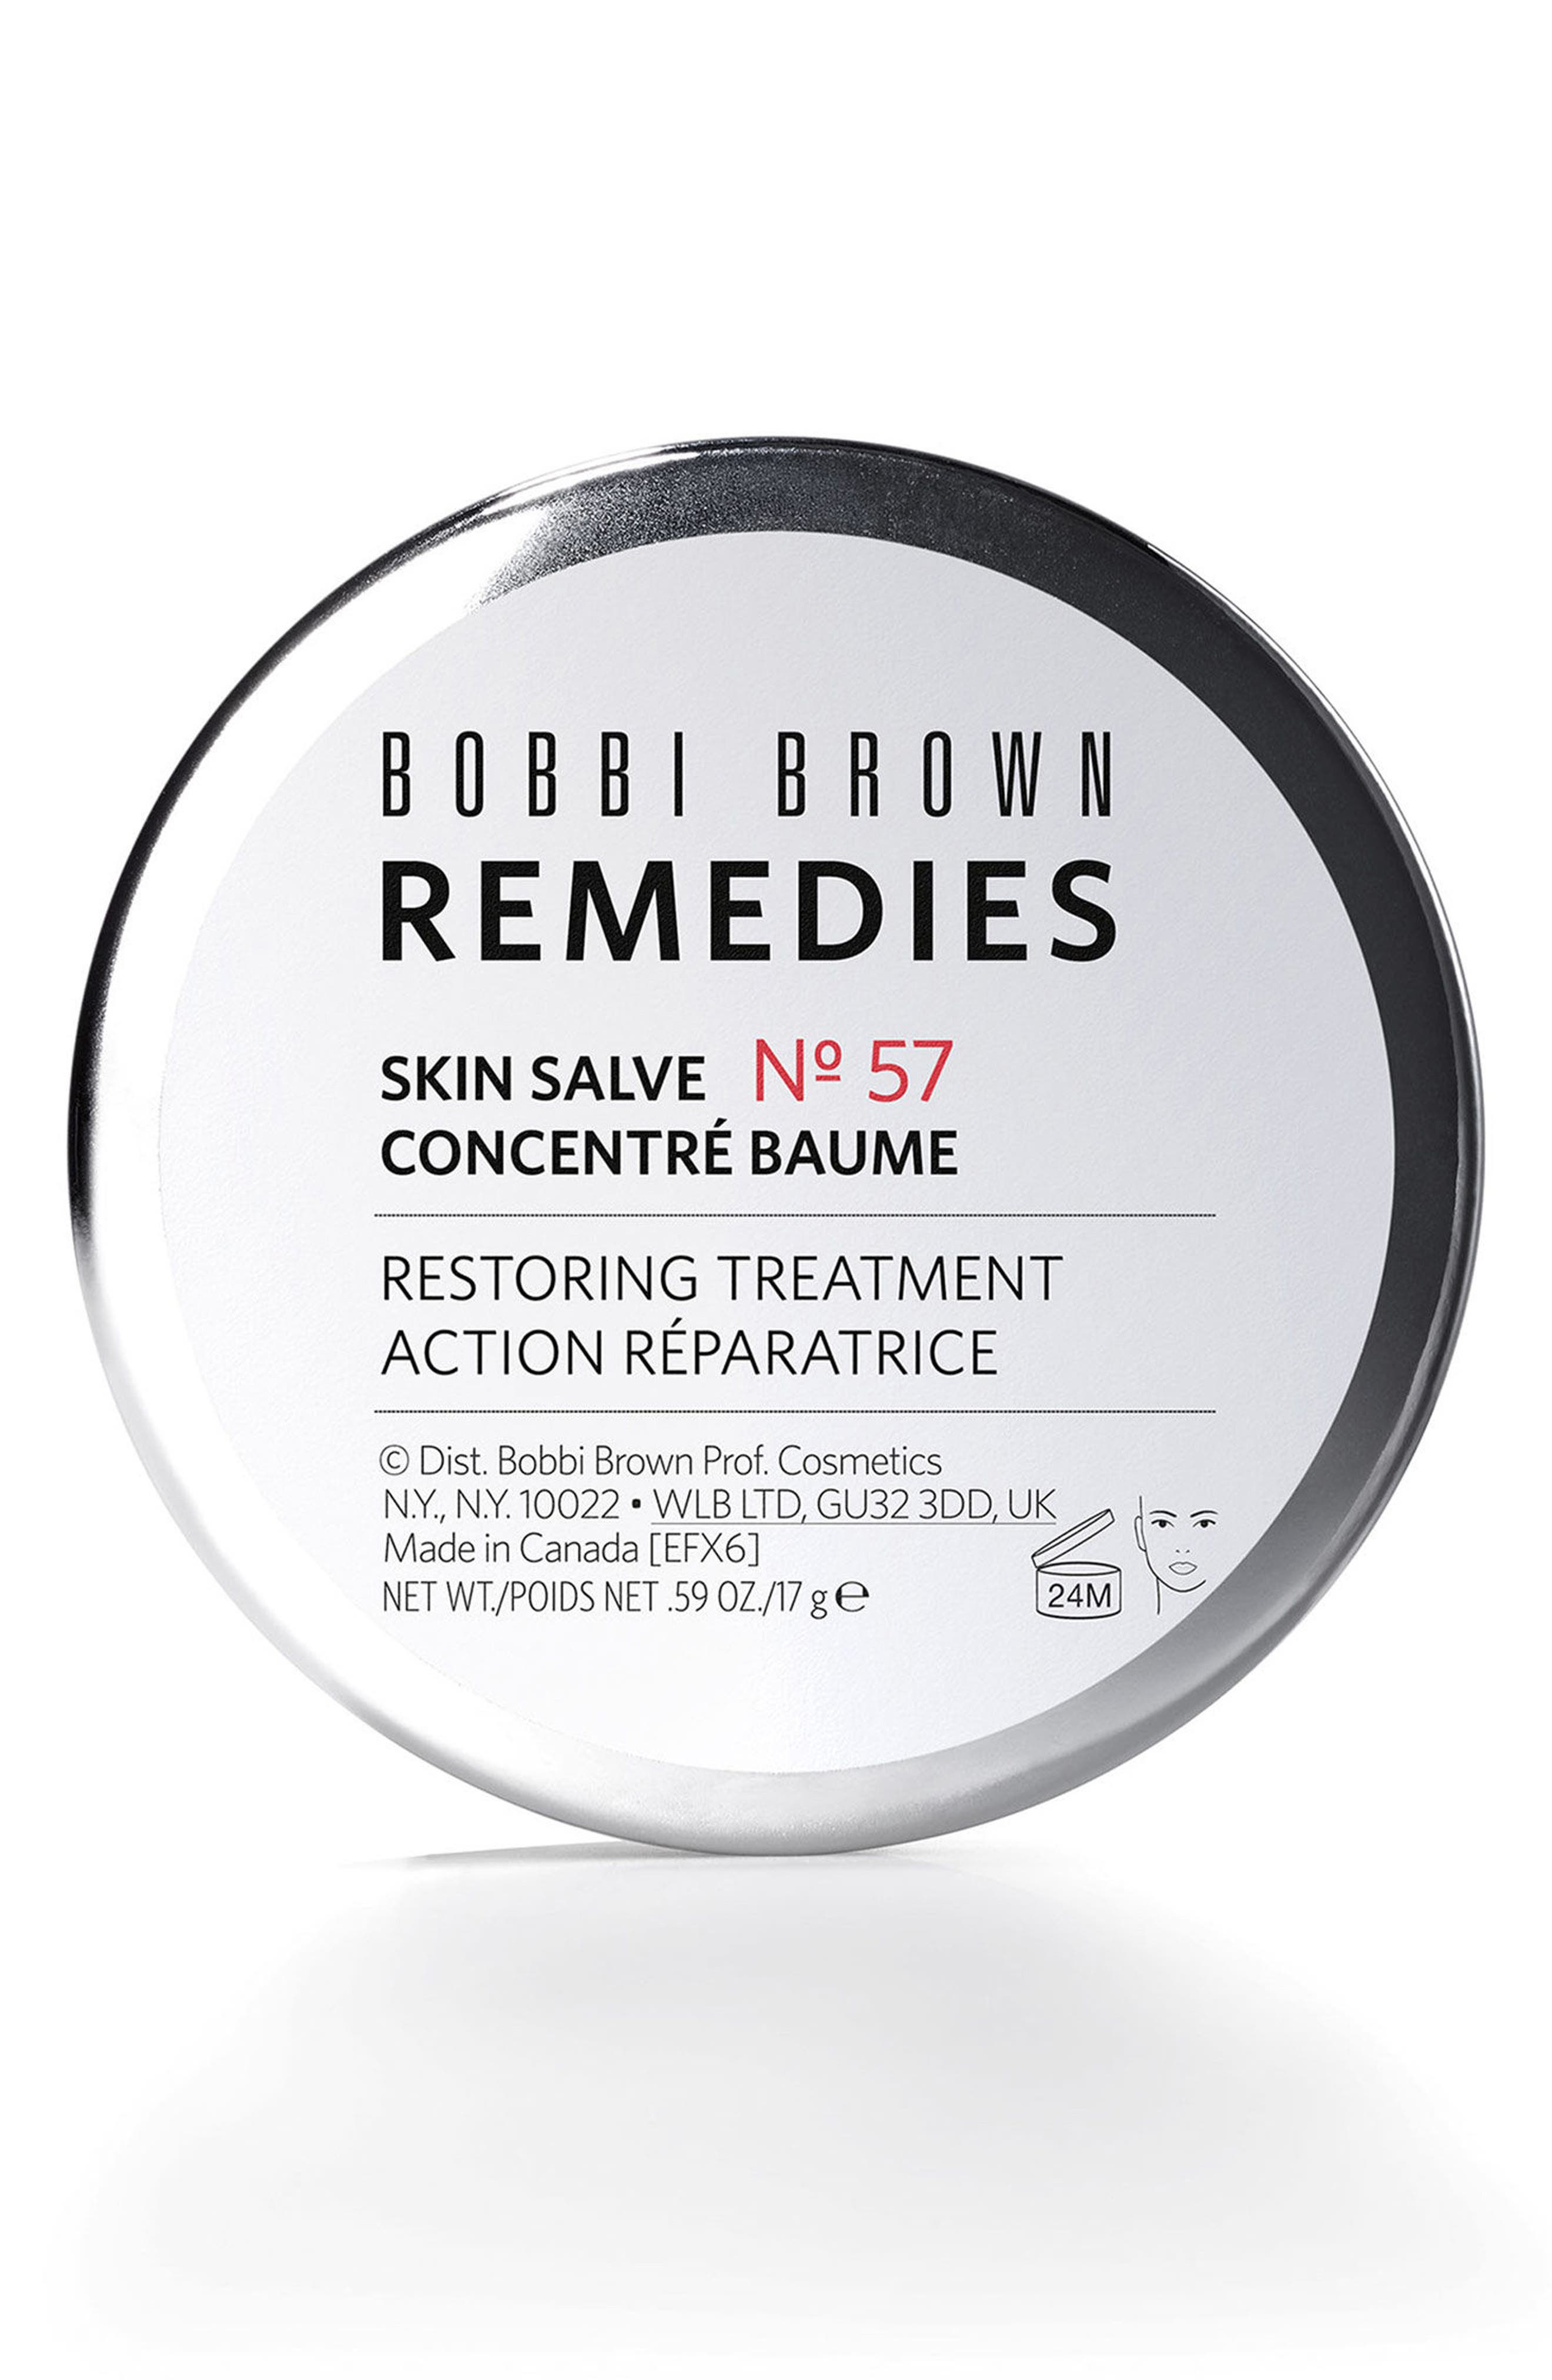 Bobbi Brown Remedies Skin Salve Restoring Treatment